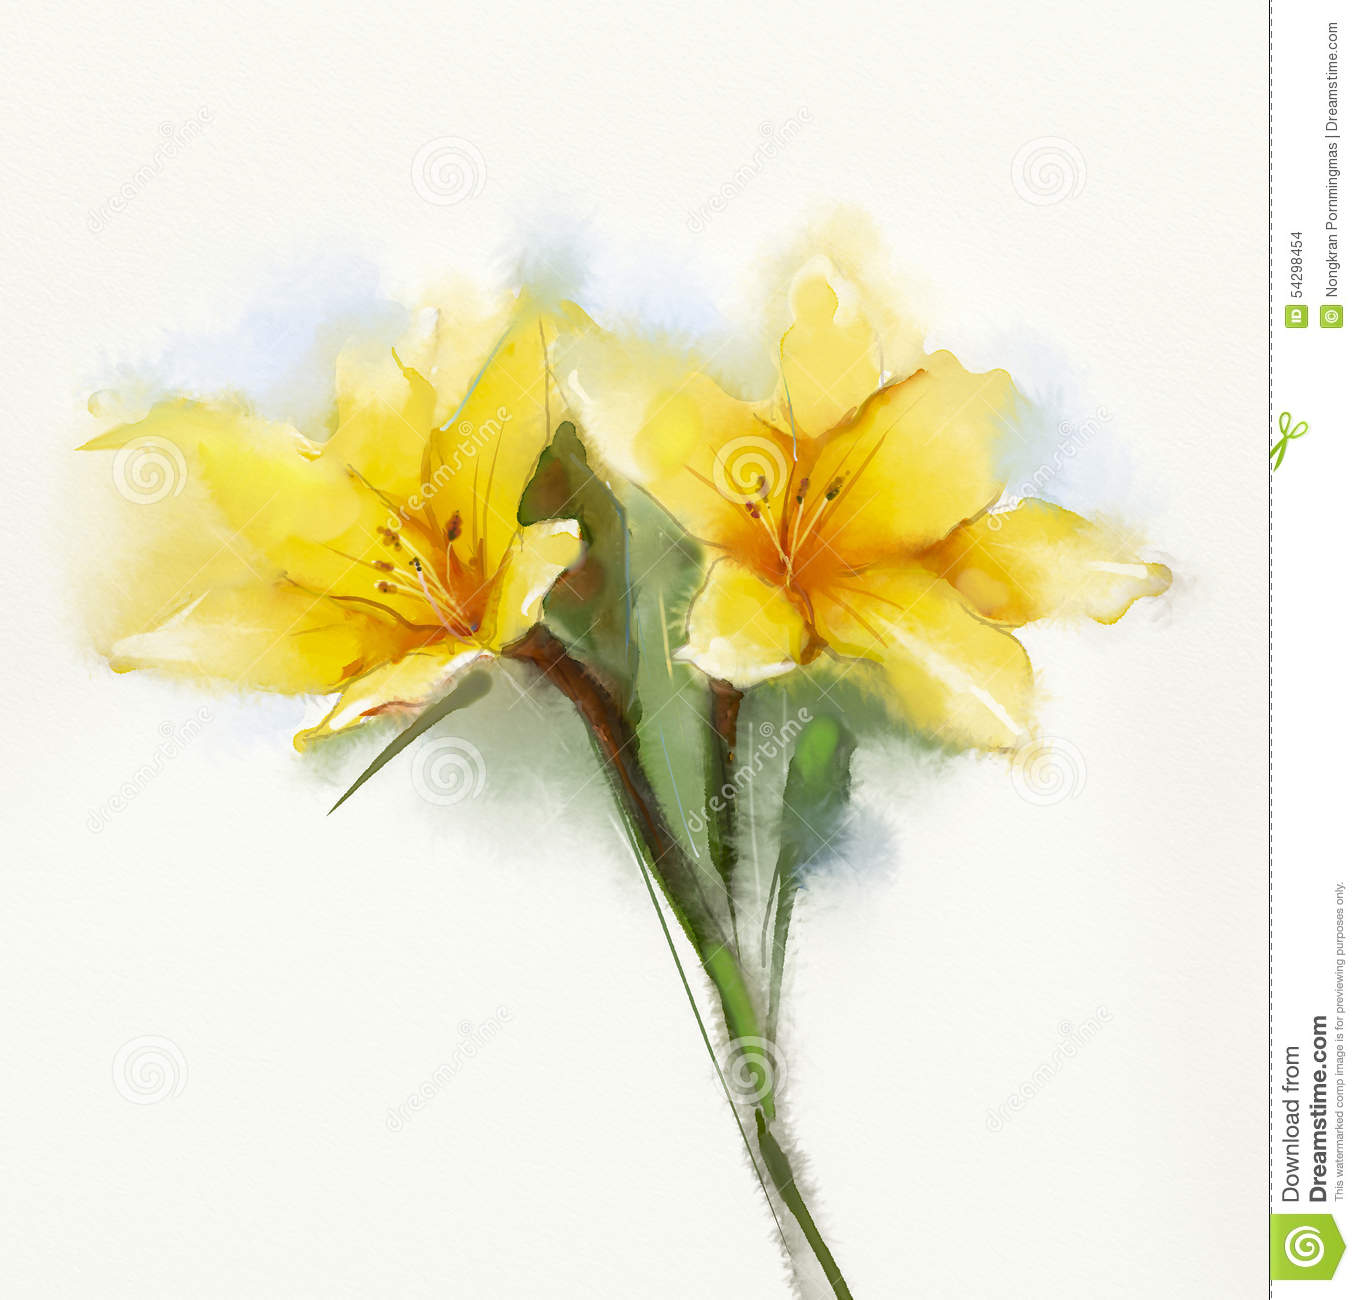 Watercolor painting yellow lilies flower stock illustration watercolor painting yellow lilies flower mightylinksfo